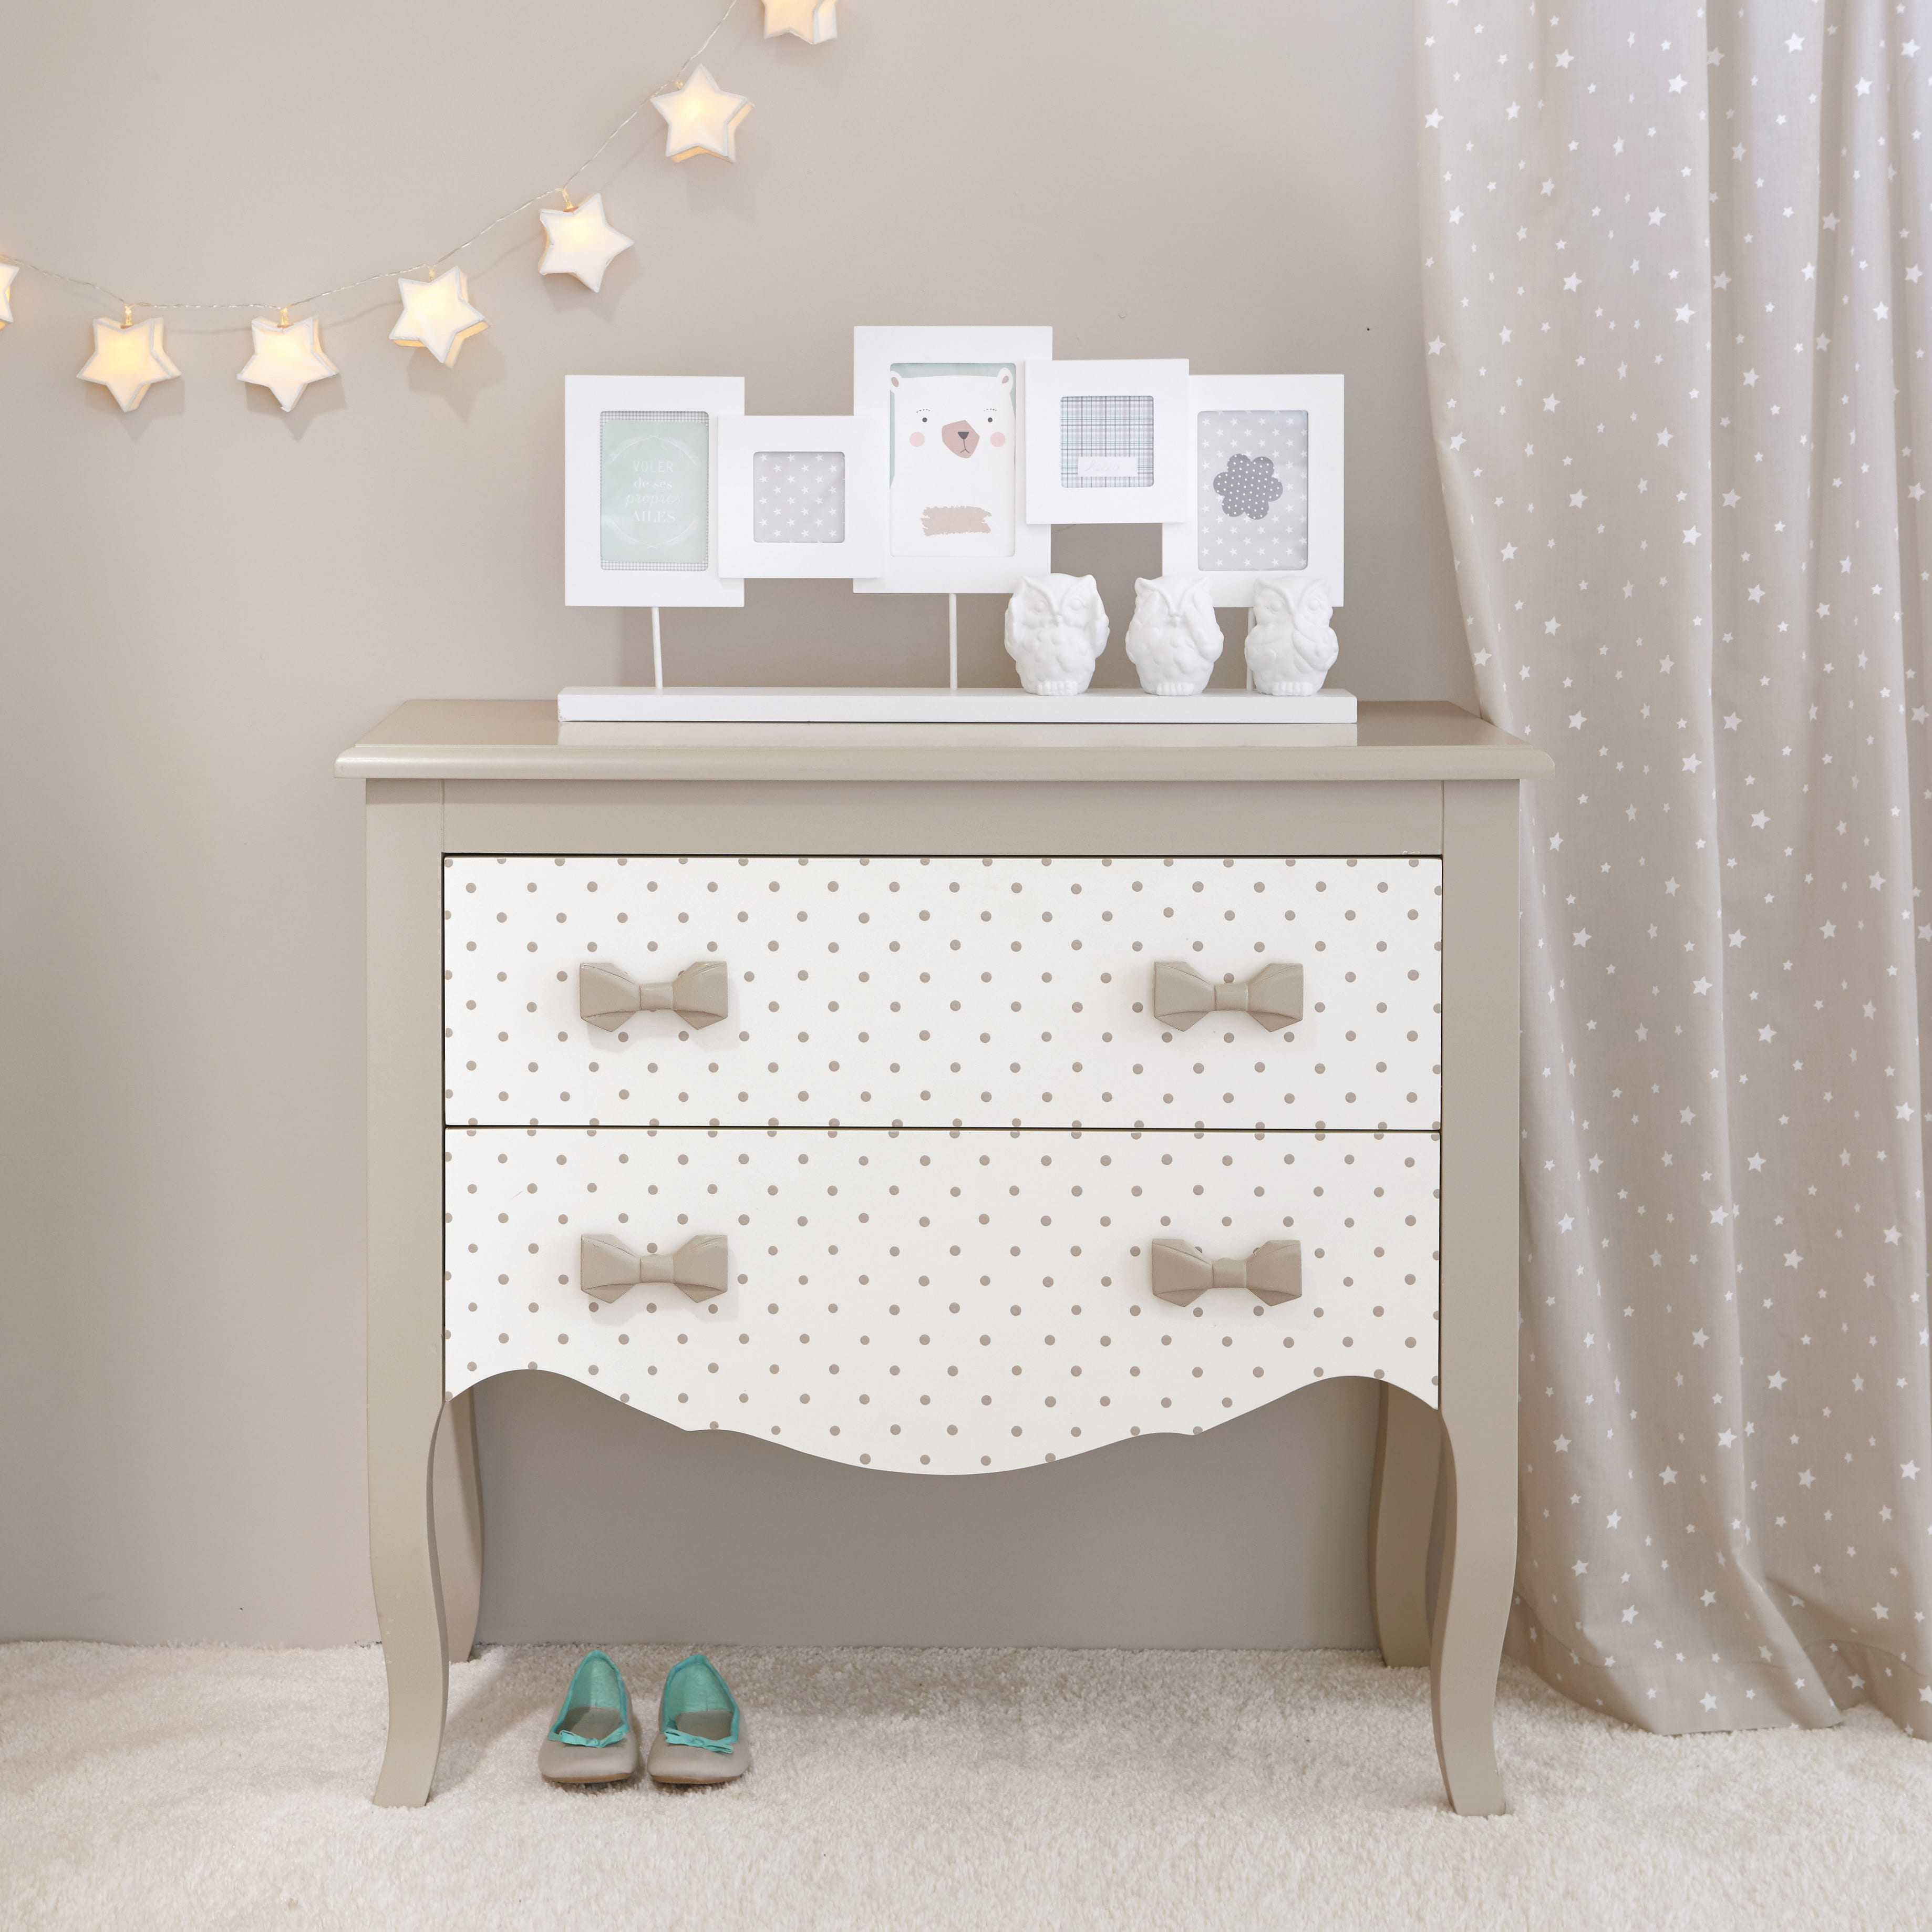 commode enfant en bois blanche taupe l 80 cm coquette maisons du monde kids bedroom. Black Bedroom Furniture Sets. Home Design Ideas